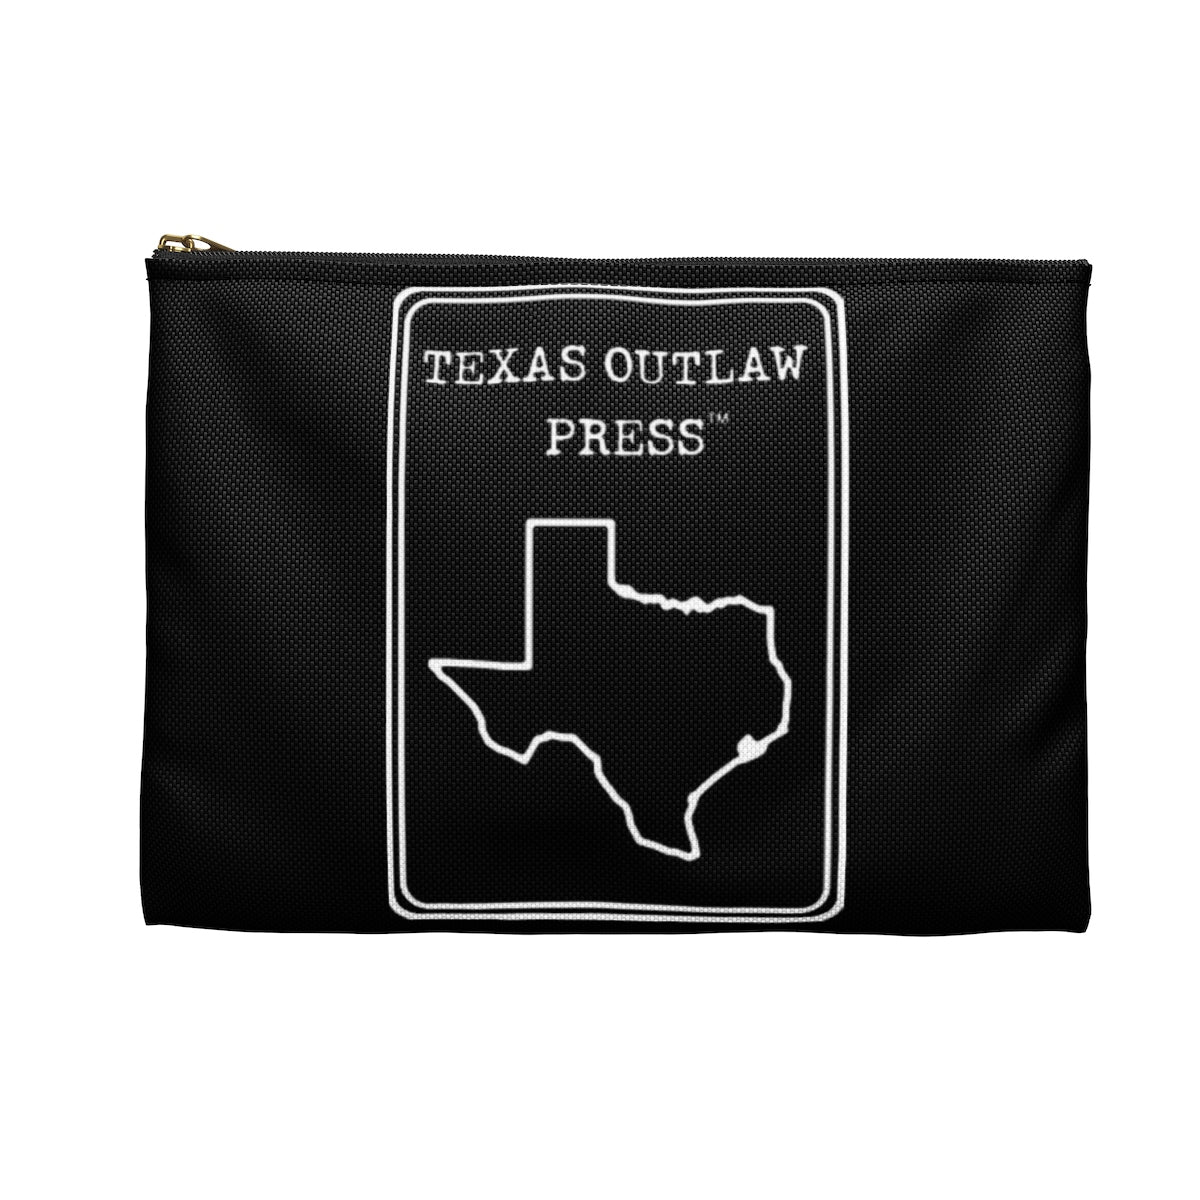 Texas Outlaw Press Black Logo Accessory Pouch